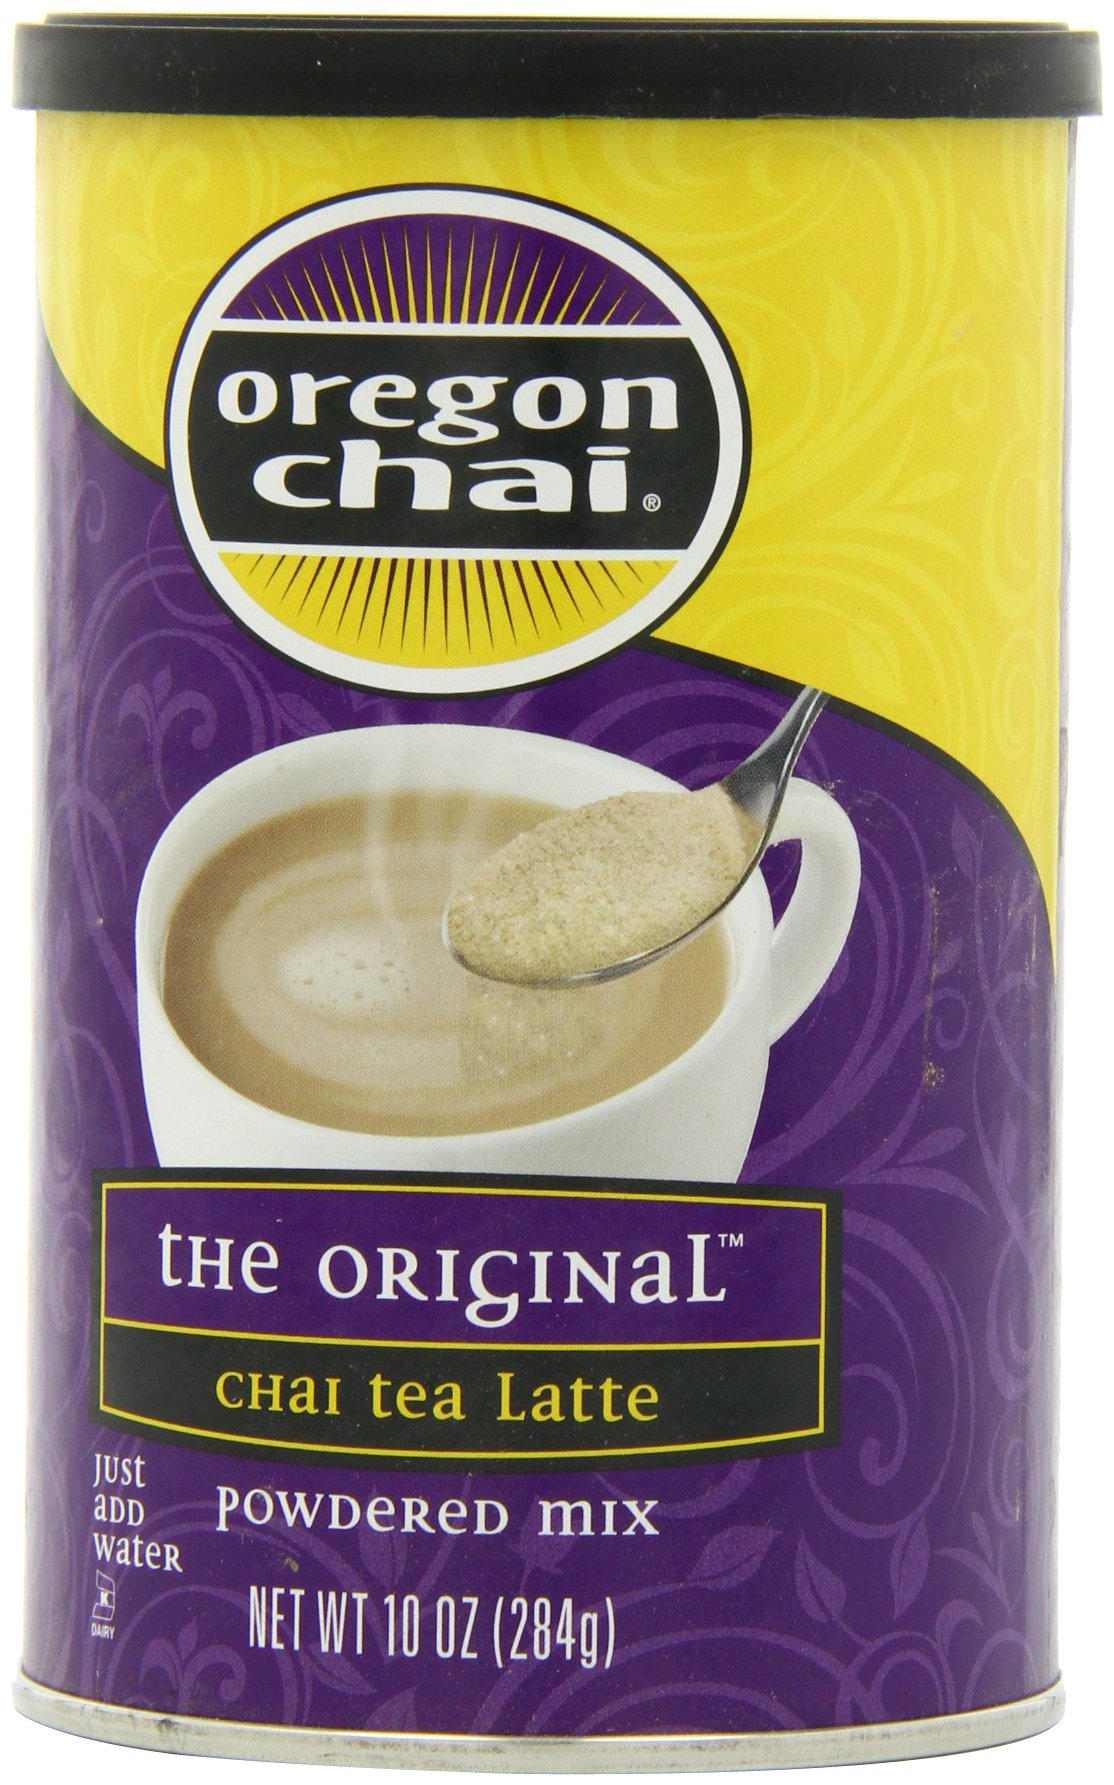 oregon chai original chai tea latte powdered mix 10 ounce containers pack of 6. Black Bedroom Furniture Sets. Home Design Ideas